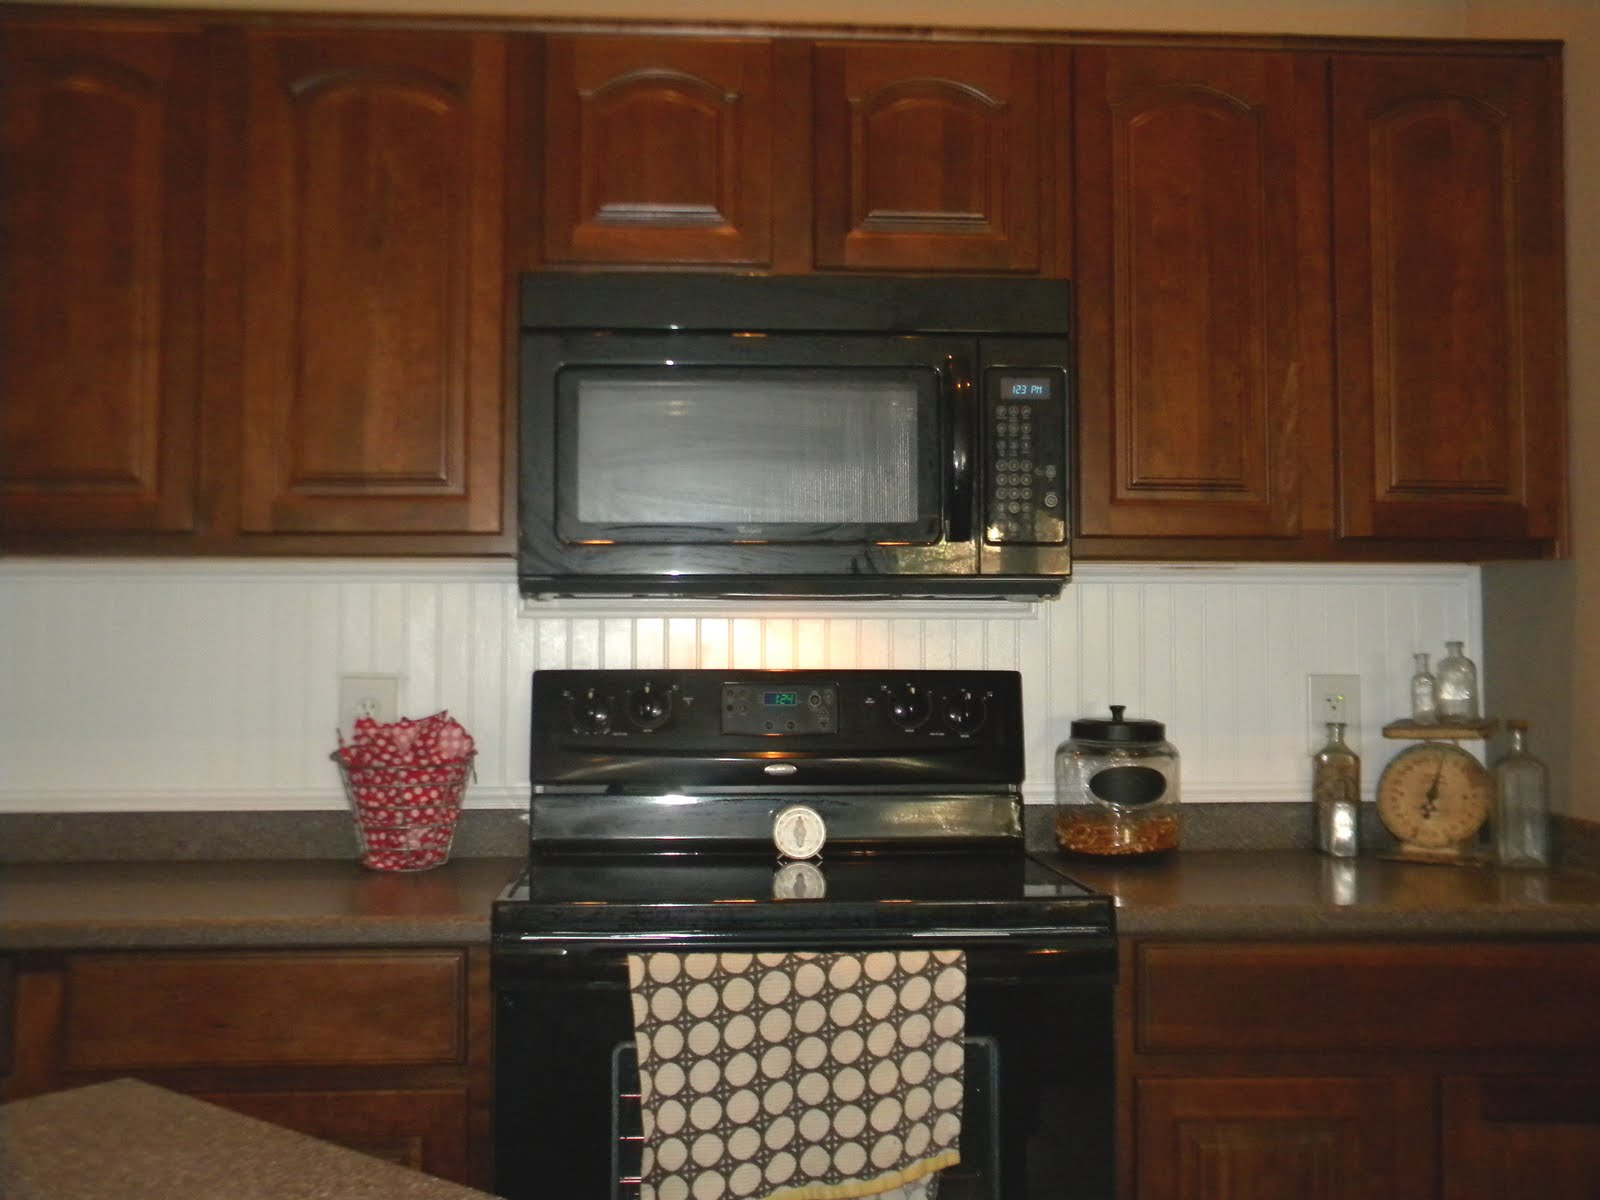 Kitchen Stove Top : Simple Design Of Built In Stove Top Kitchen With Wooden Kitchen Set